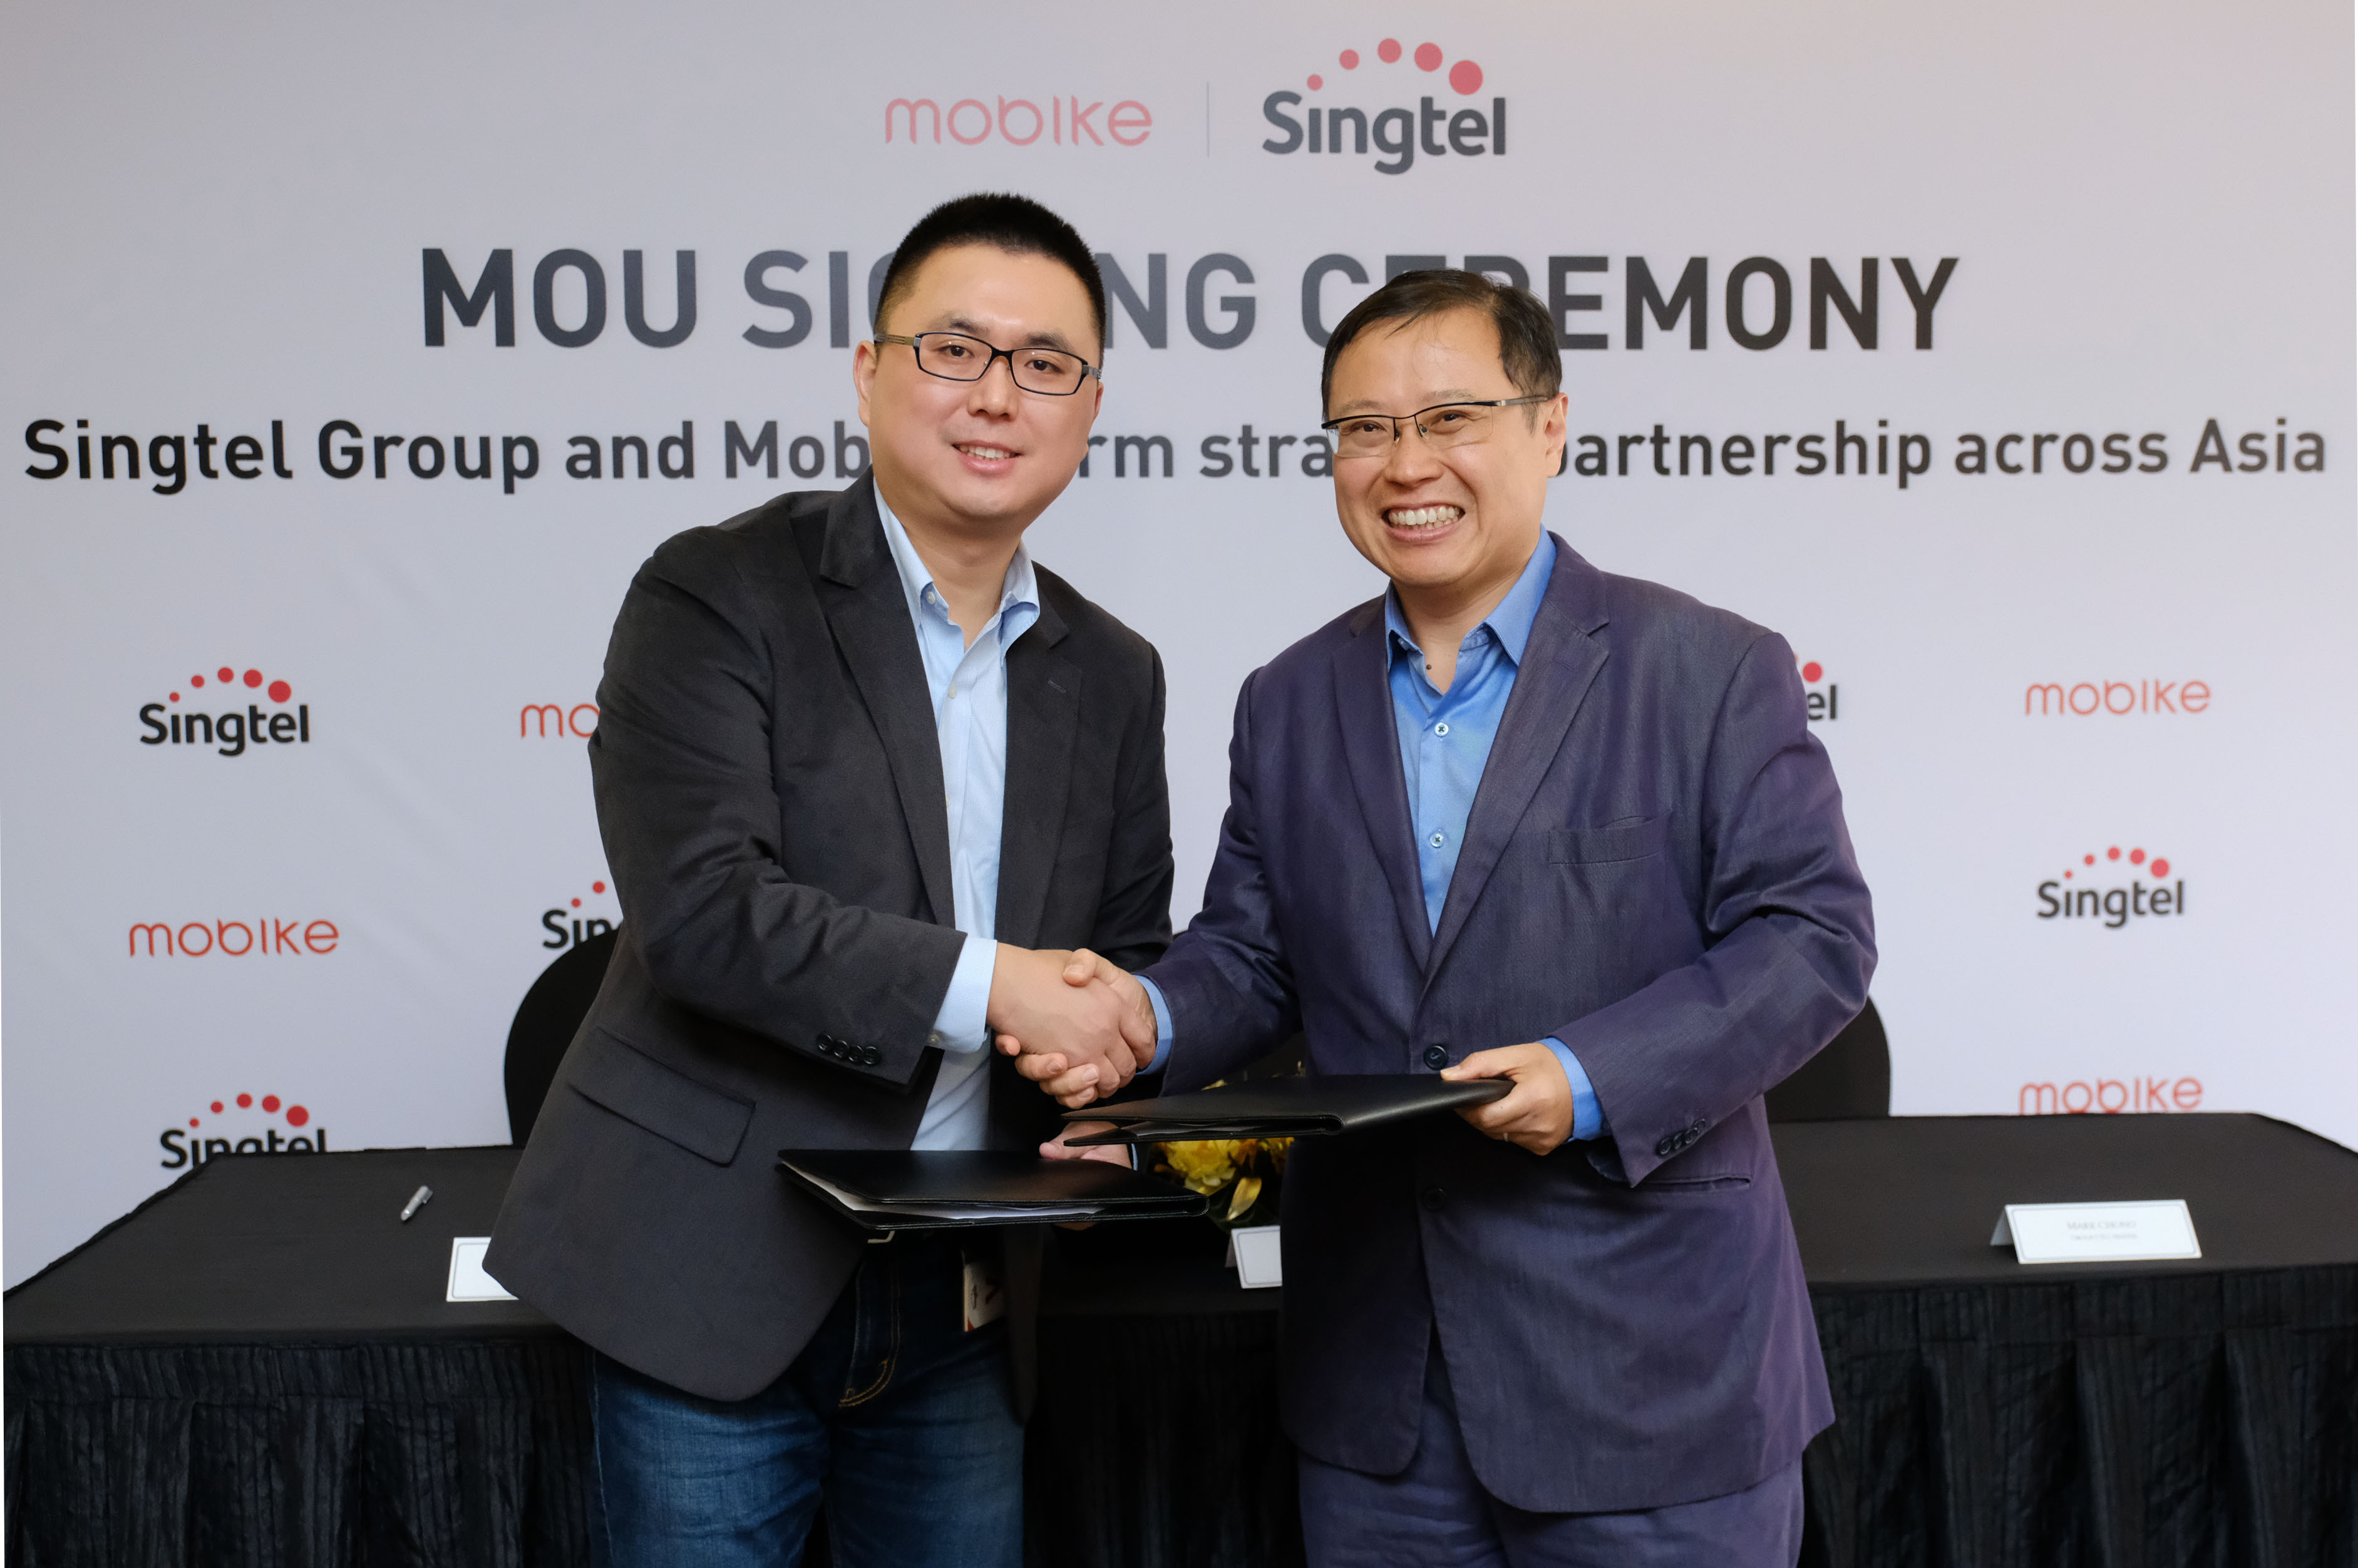 Joe Xia Mobike Co-founder and CTO and Mr Arthur Lang, CEO International Group, Singtel at MOU signing ceremony for Singtel Group-Mobike strategic partnership across Asia